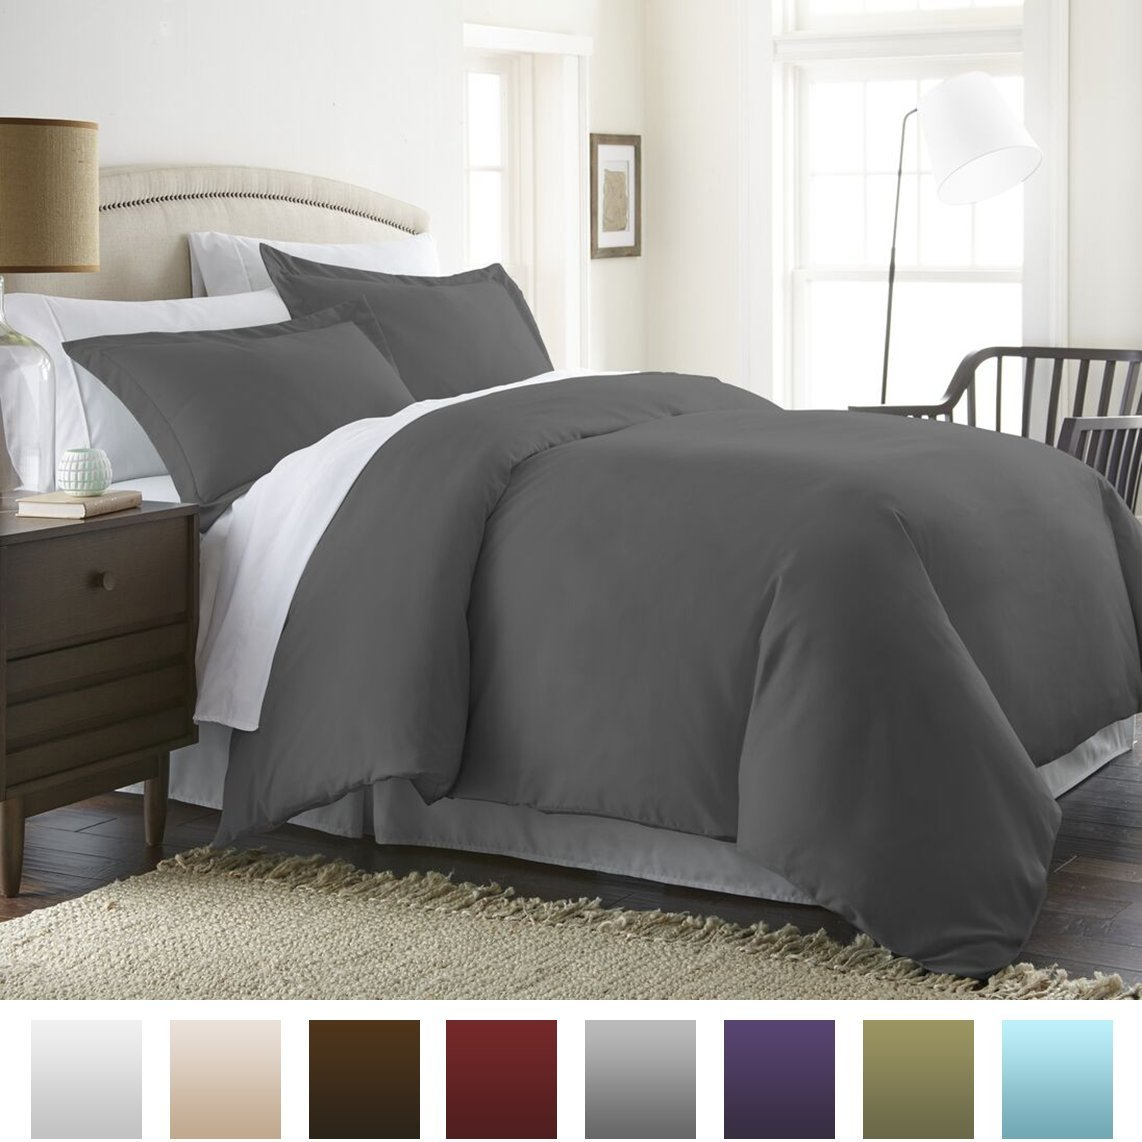 Hypoallergenic Microfiber 3-Piece Duvet Cover Set, Full/Queen, Gray